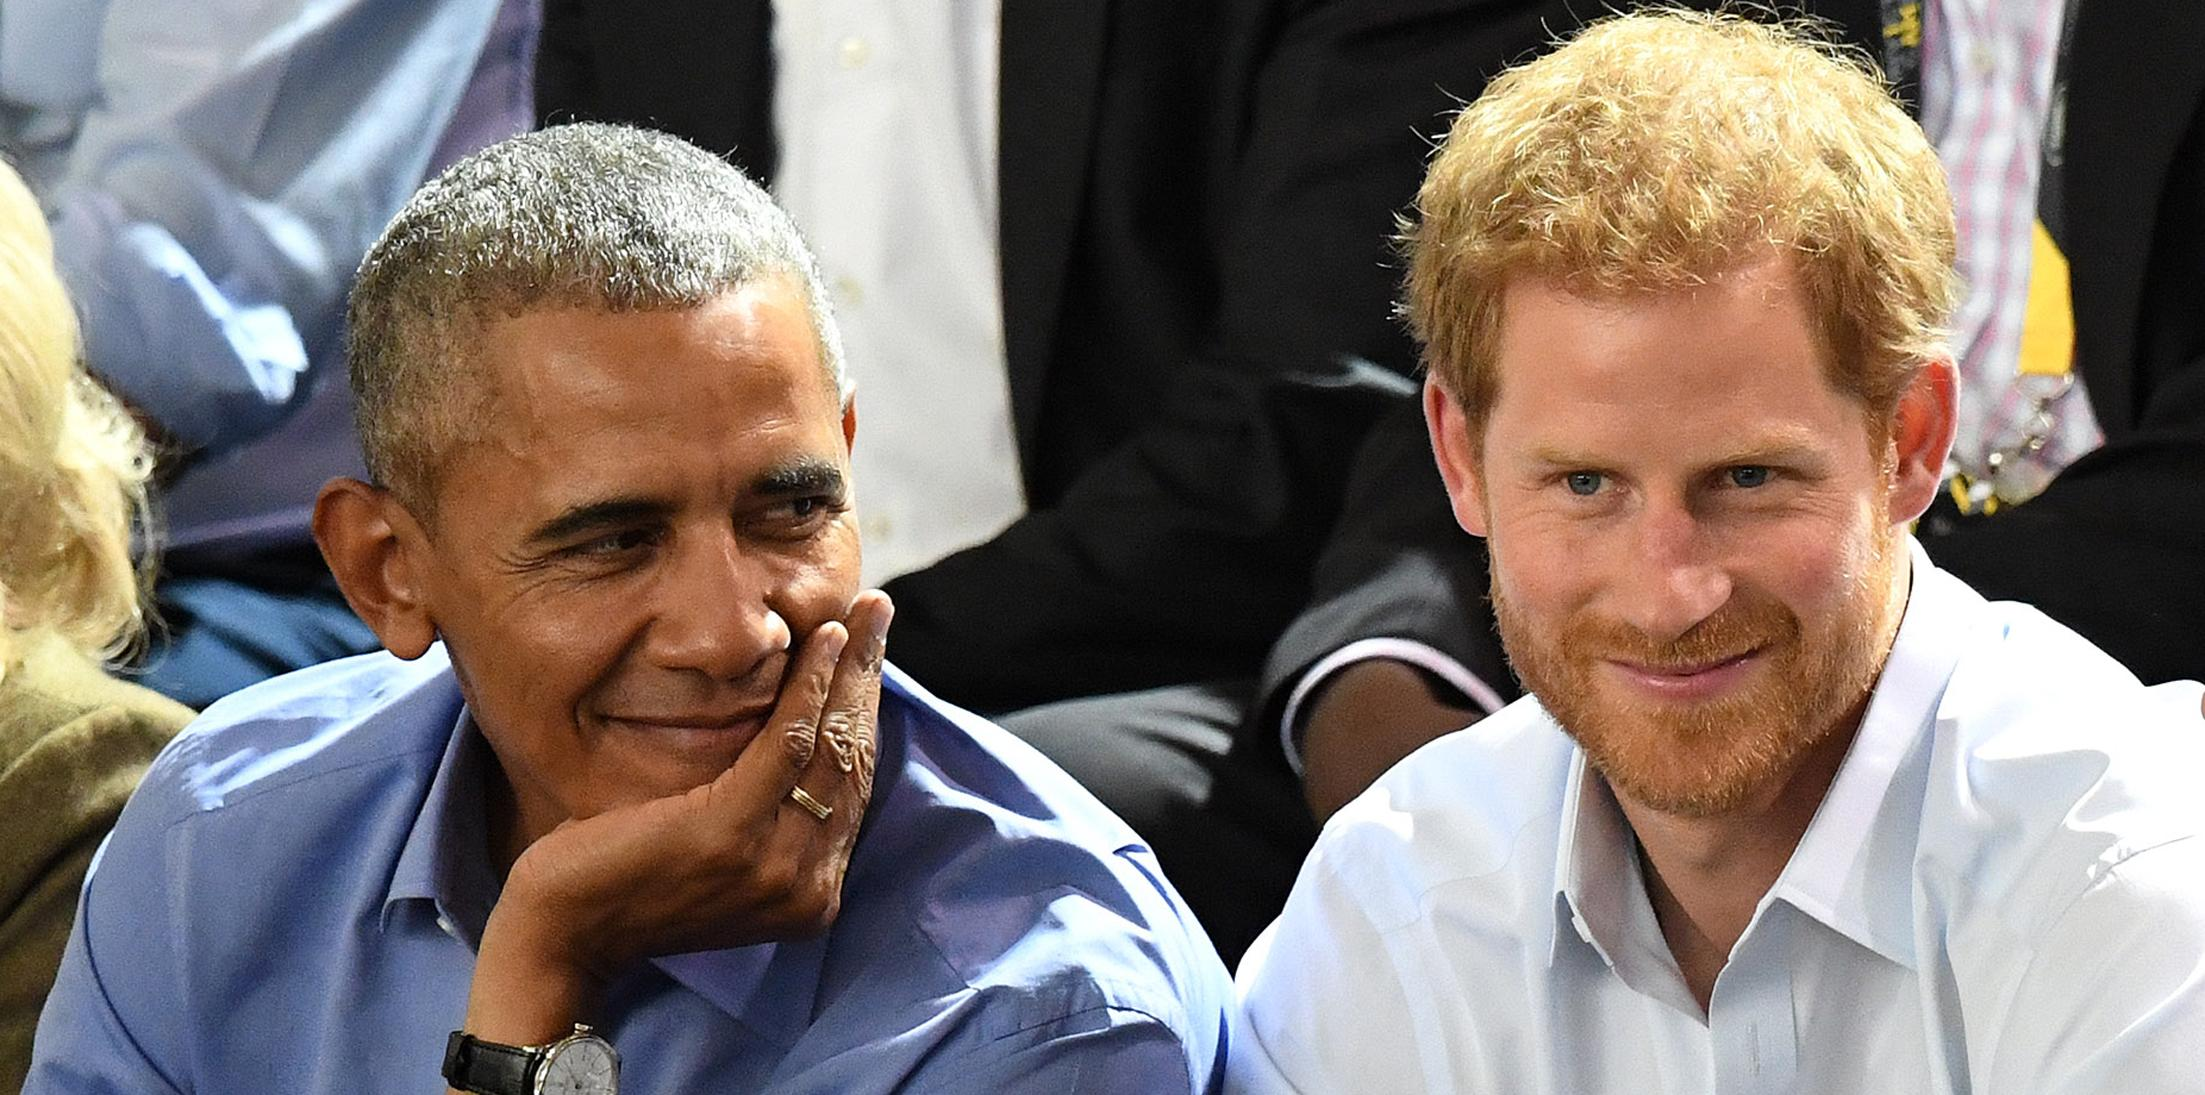 Prince Harry and Barack Obama attend the Invictus Games Wheelchair Basketball